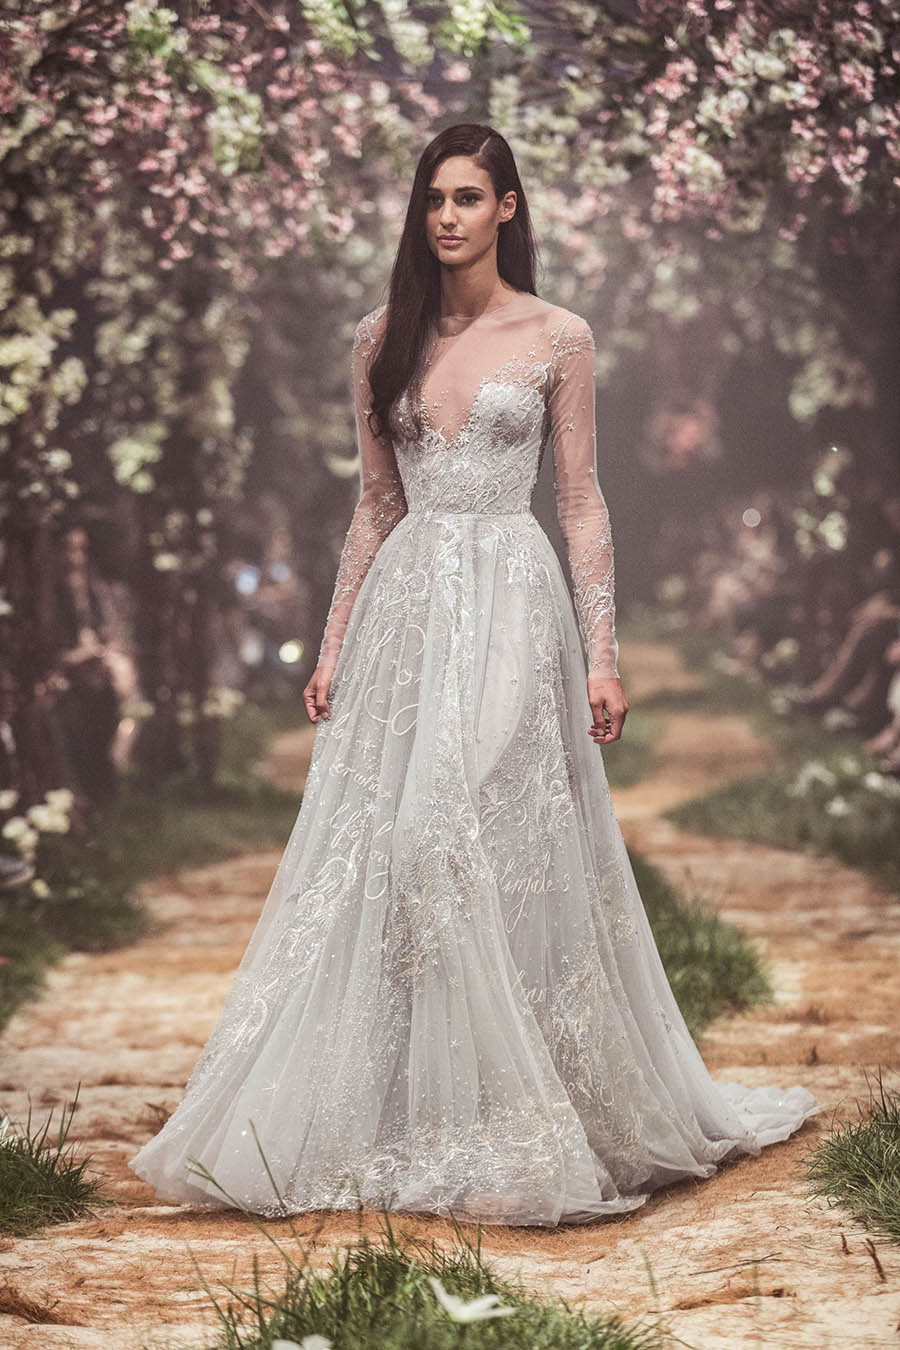 Kv besides Dvd in addition Hea Fireworks moreover Illustration Of Firefly Bugs At Night In Vector moreover A Paolo Sebastian Disney Spring Summer Wedding Dresses. on cinderella storytelling